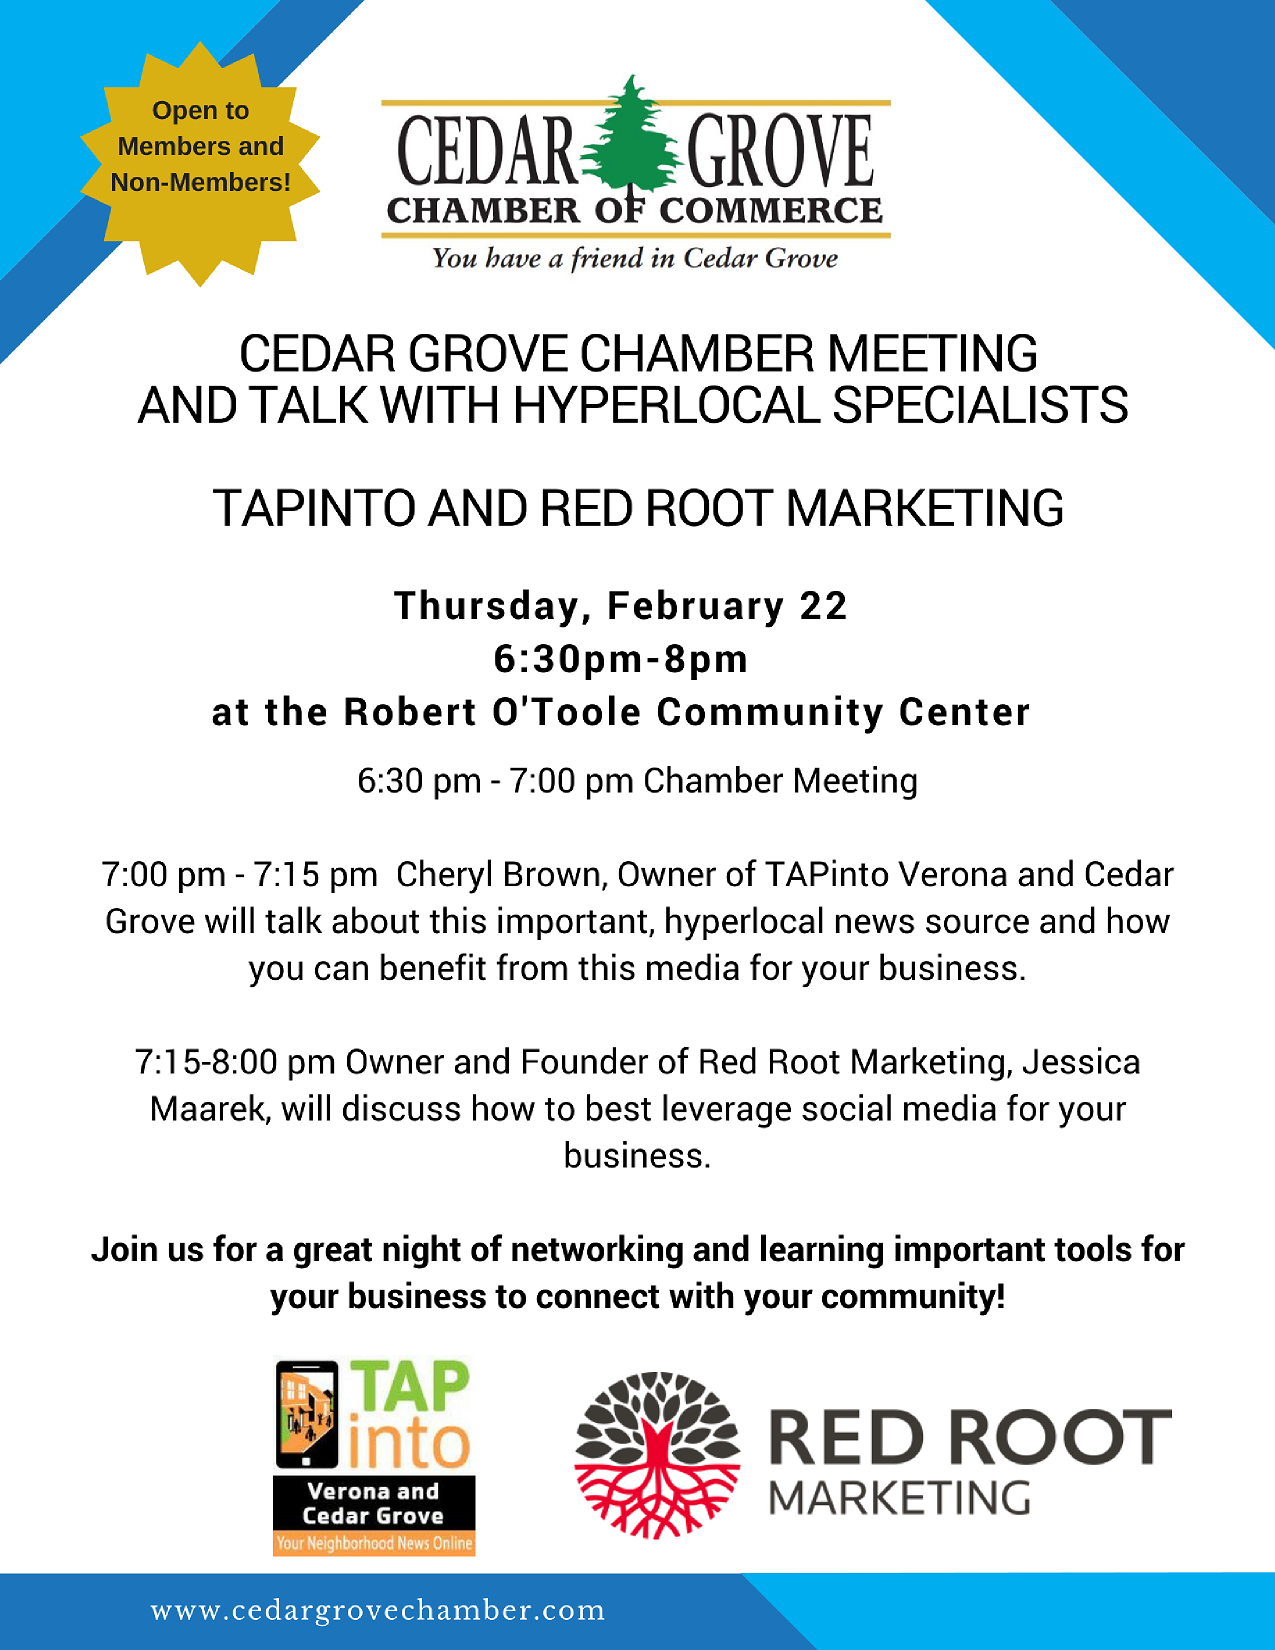 Cedar Grove Chamber Of Commerce Meeting And Hyperlocal Specialists News Tapinto